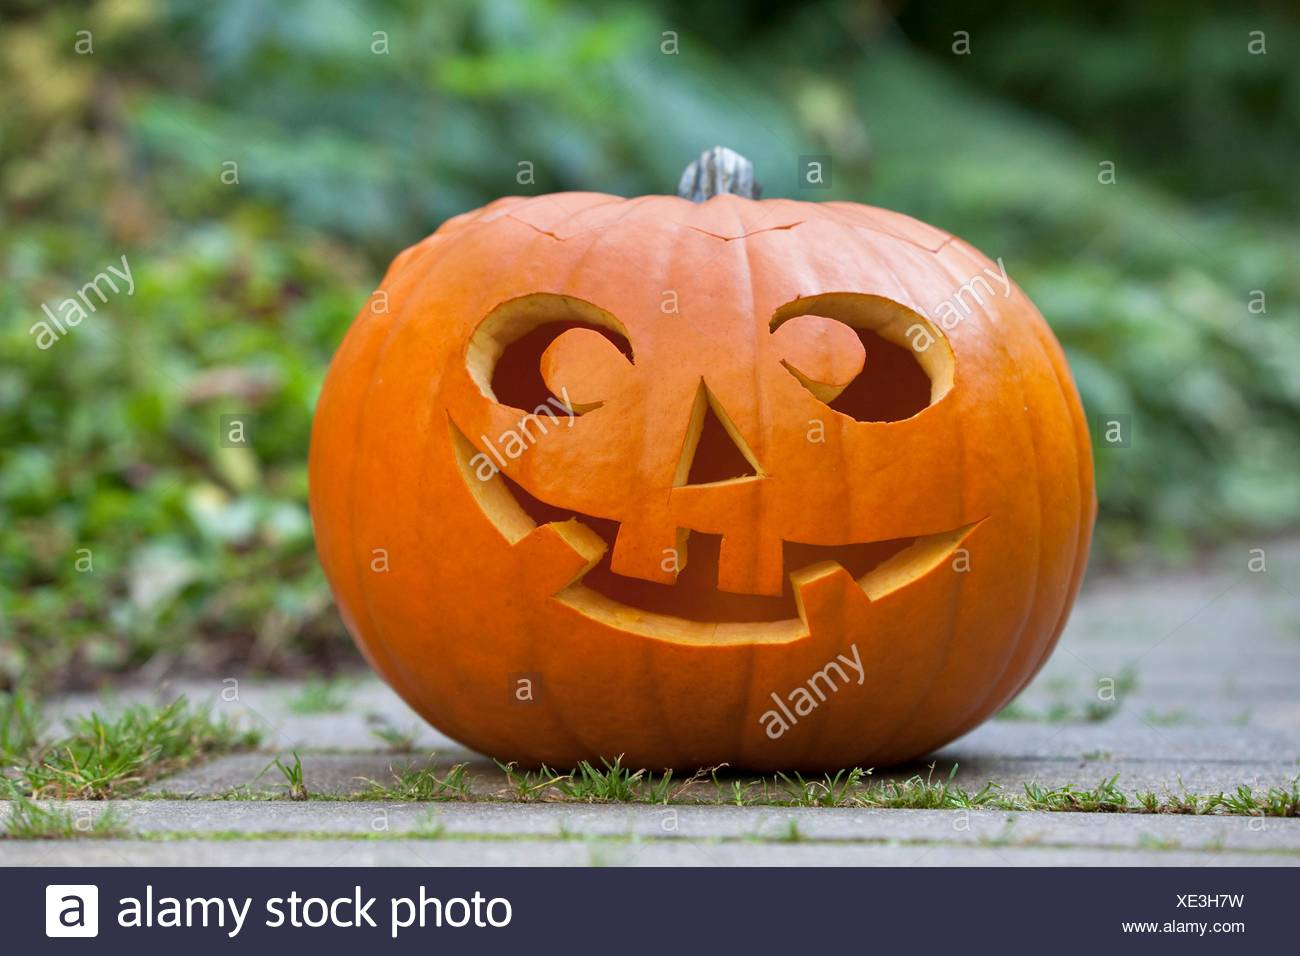 Halloween Pumkin In The Garden Stock Photo Alamy | meaning, pronunciation, translations and examples. https www alamy com halloween pumkin in the garden image284050477 html